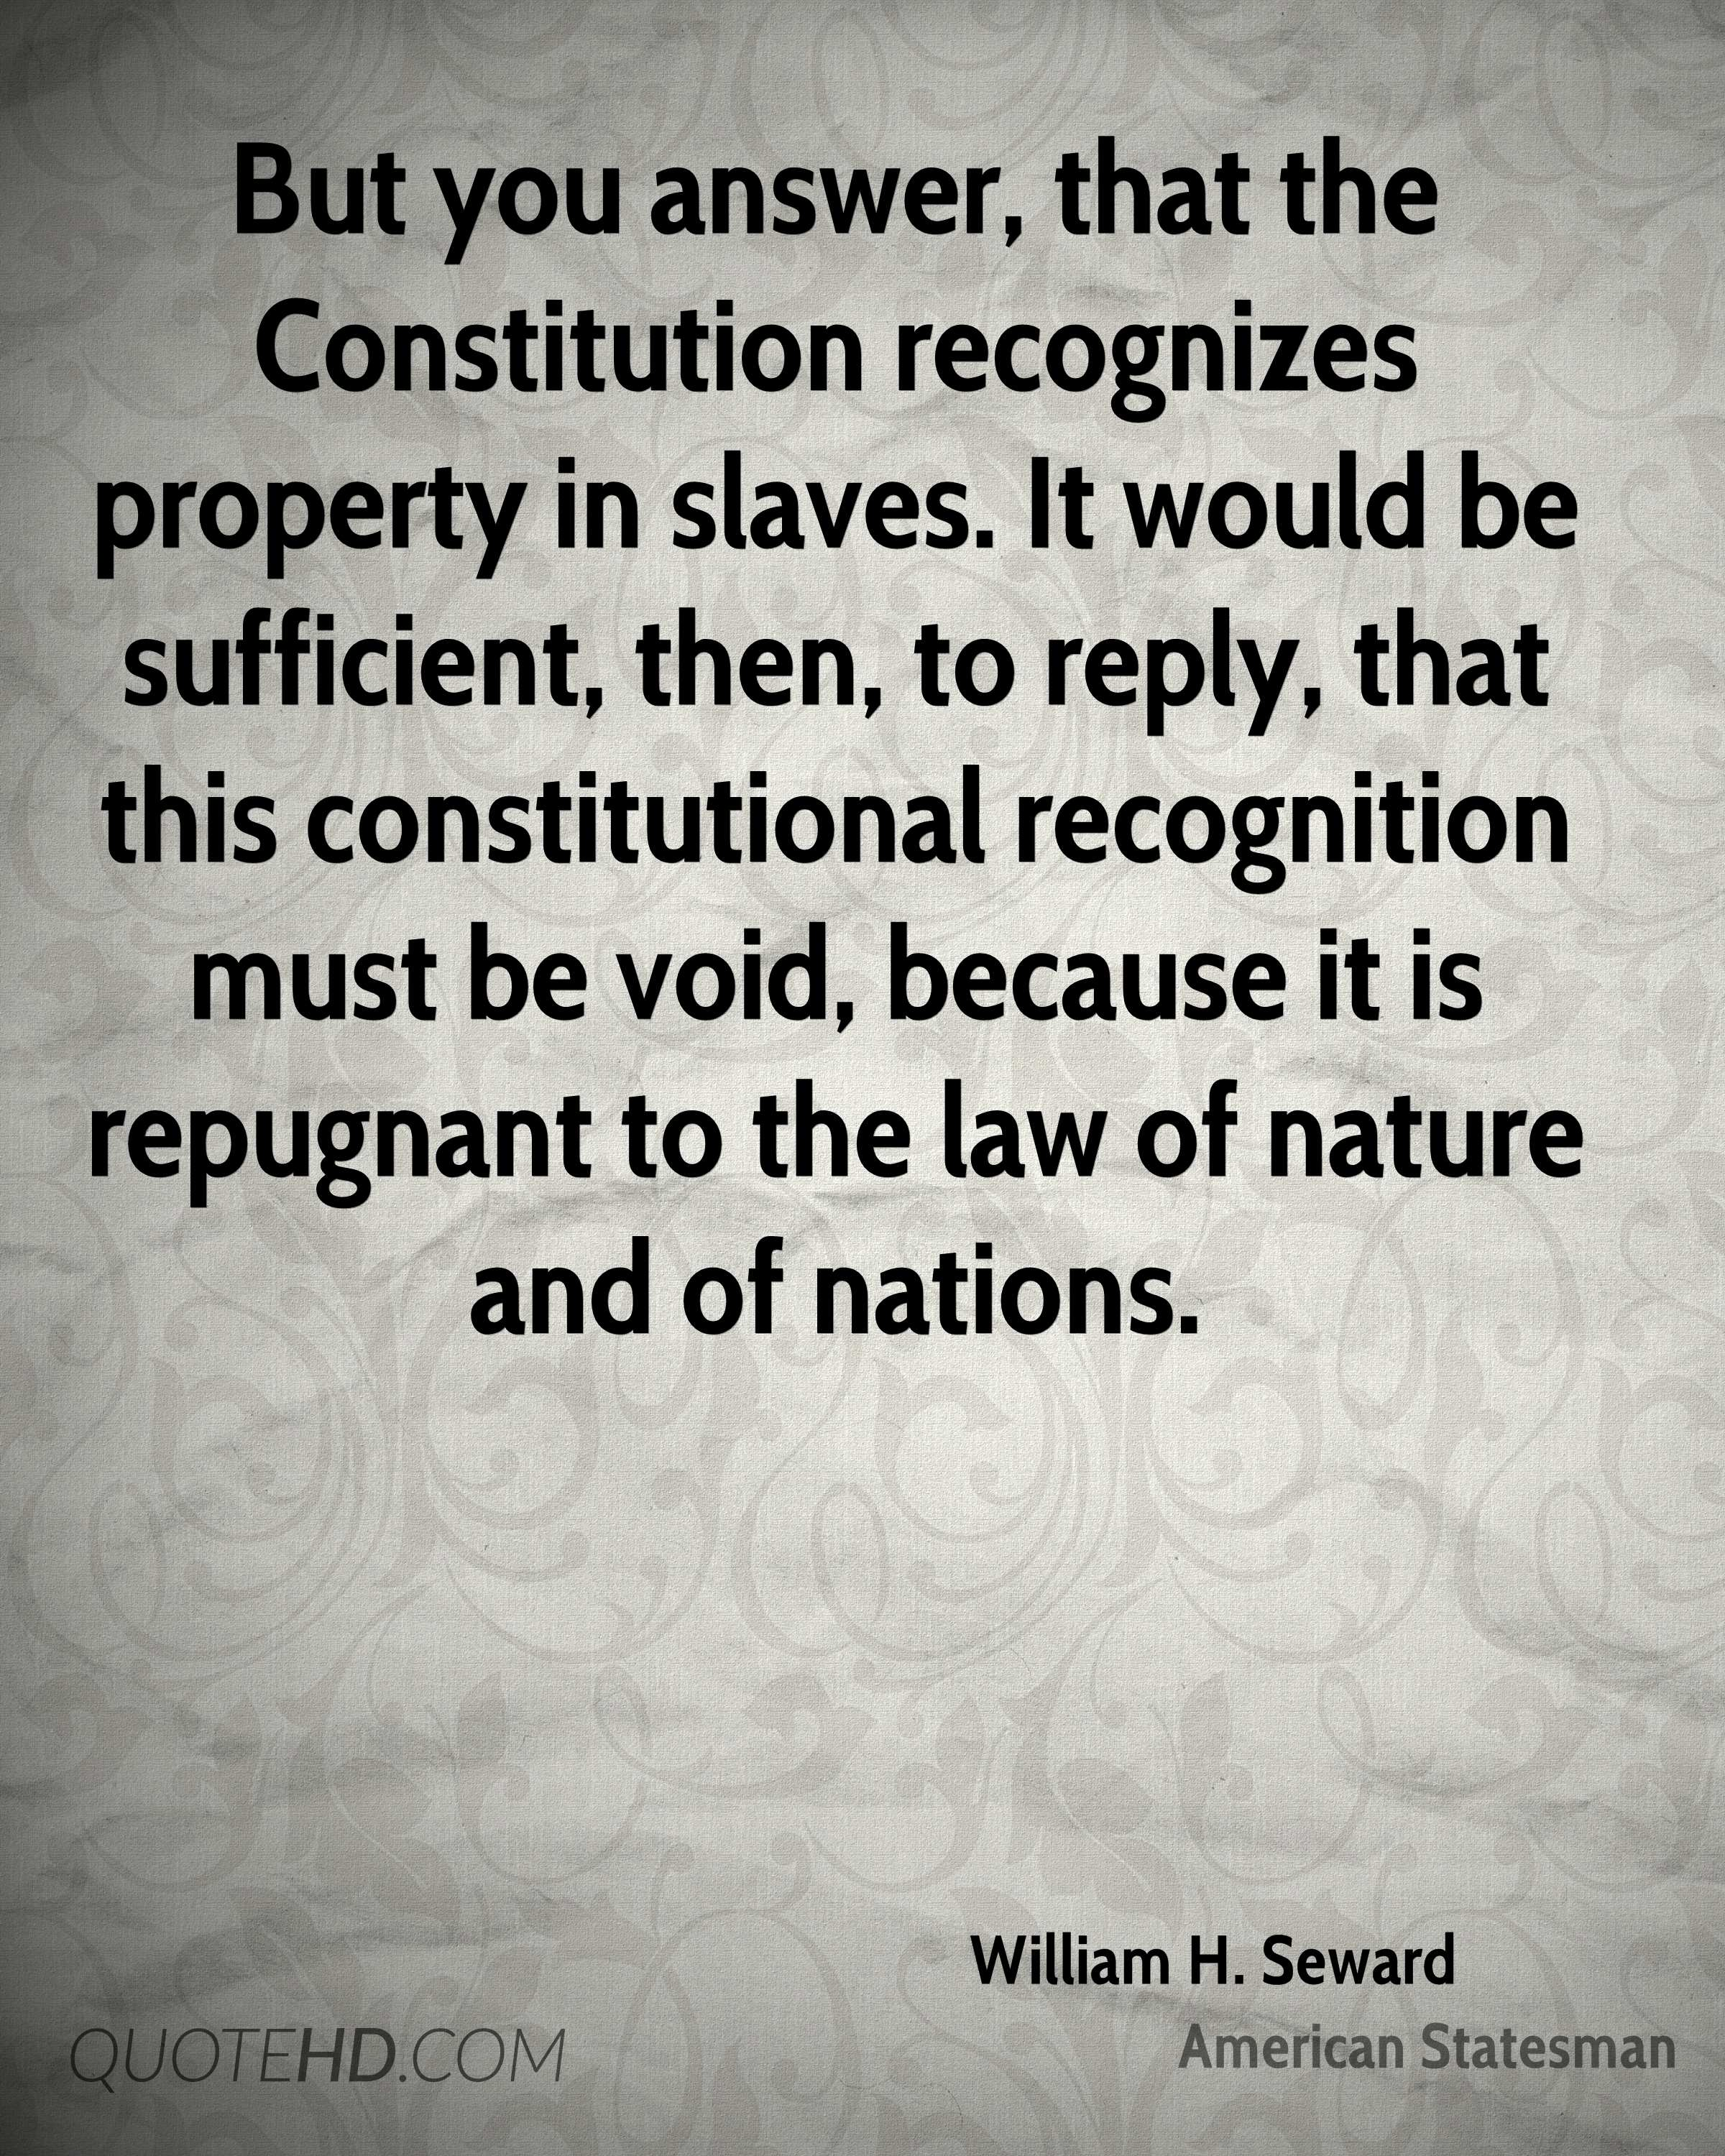 But you answer, that the Constitution recognizes property in slaves. It would be sufficient, then, to reply, that this constitutional recognition must be void, because it is repugnant to the law of nature and of nations.